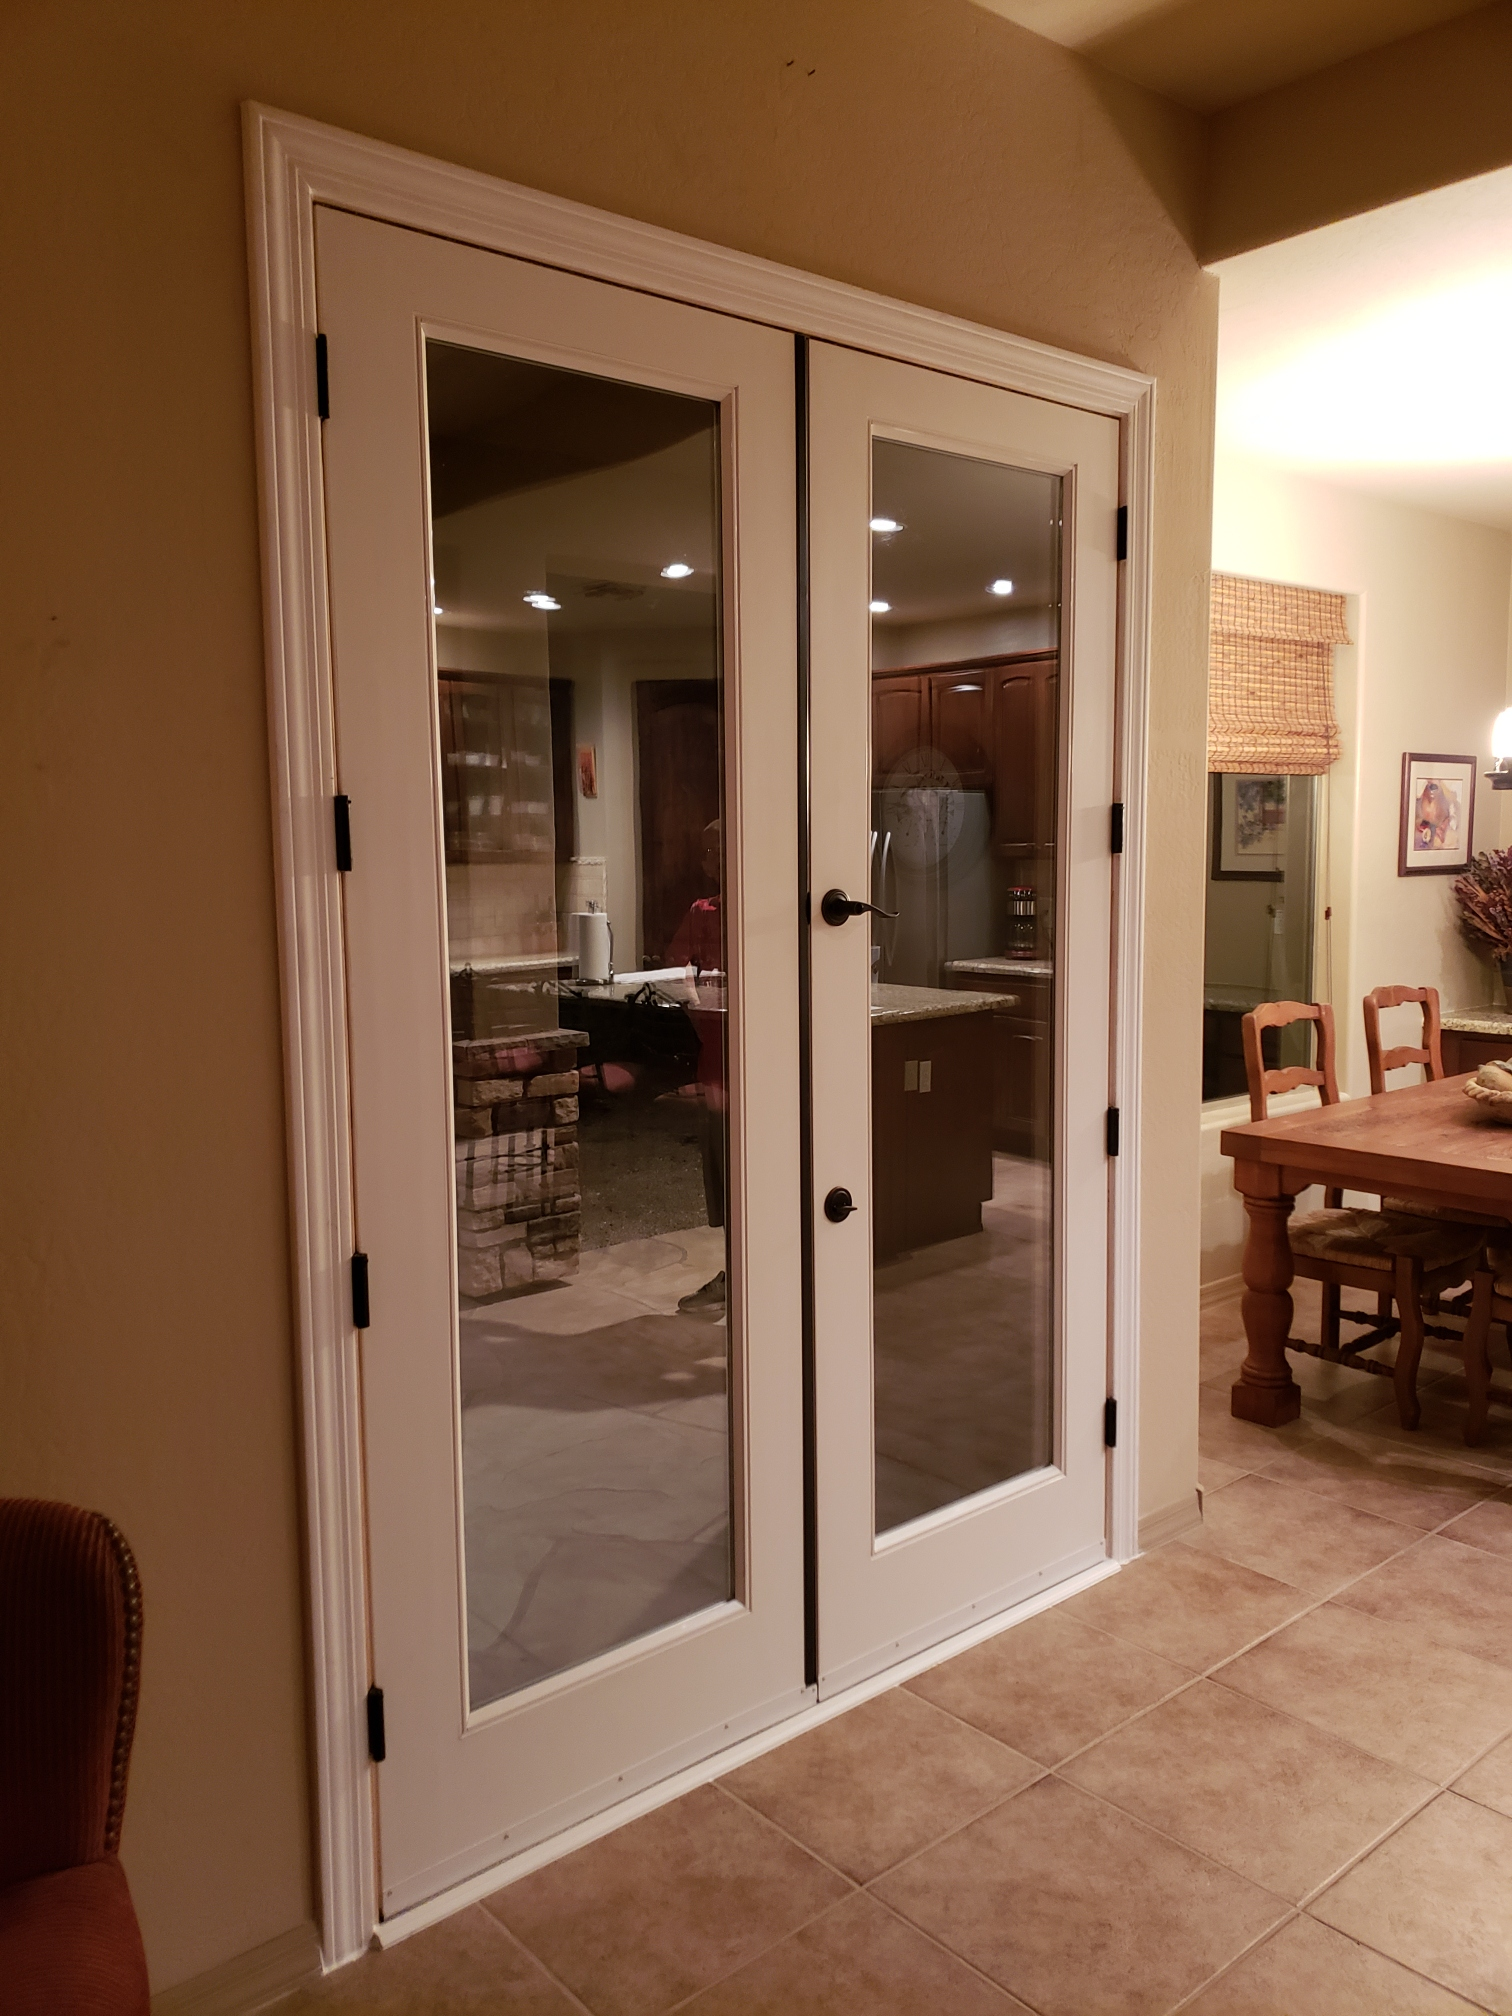 Arizona Window and Door in Scottsdale and Tucson showing french doors to the backyard